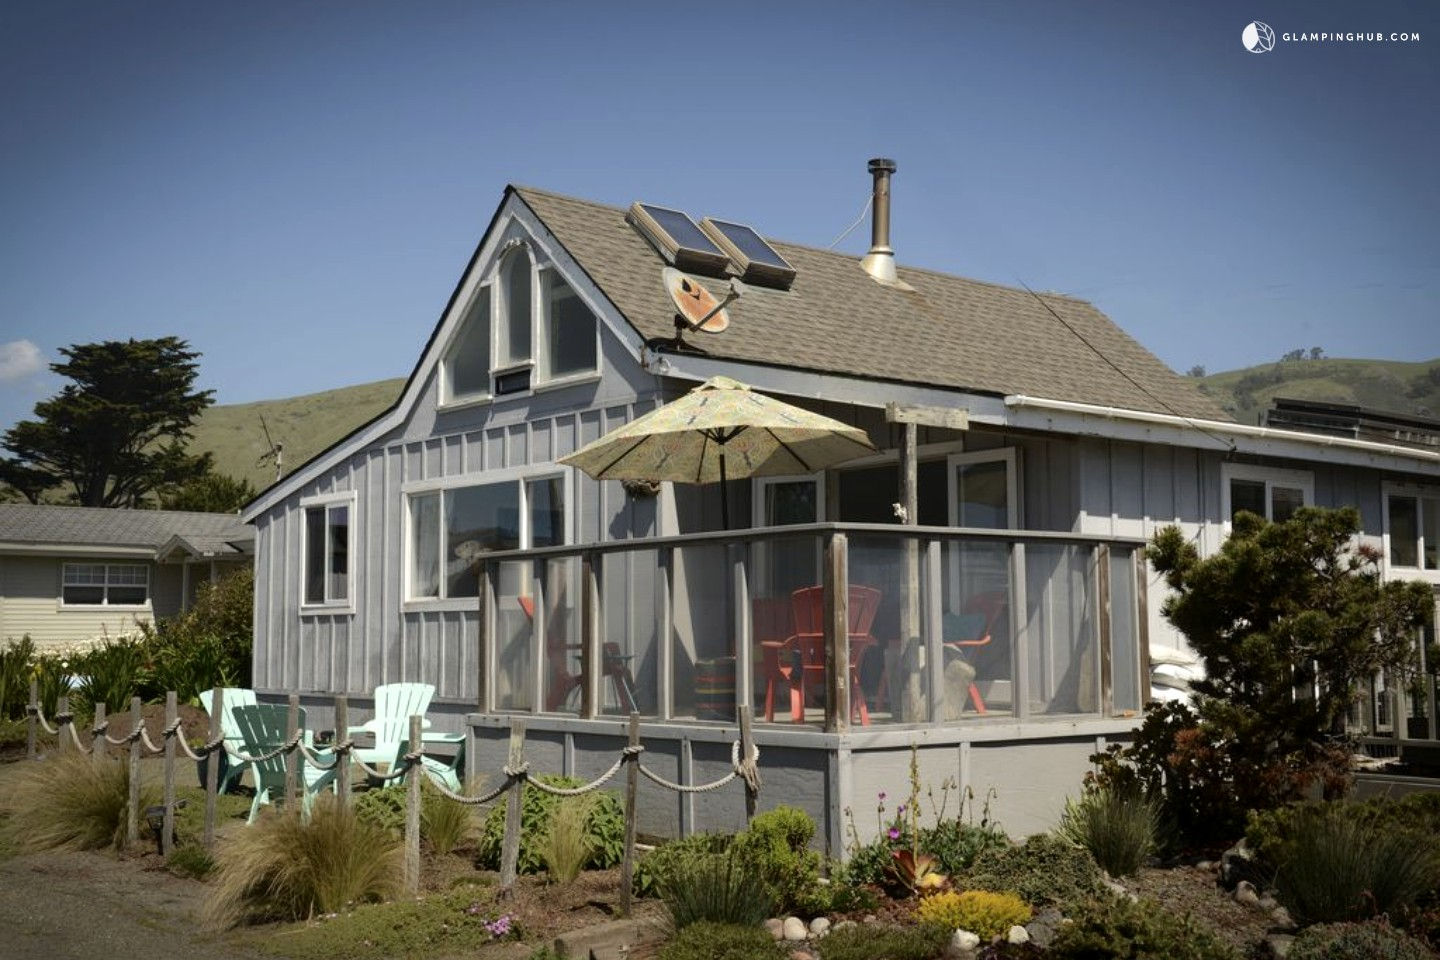 Vacation home in bodega bay northern california for Vacation cottage